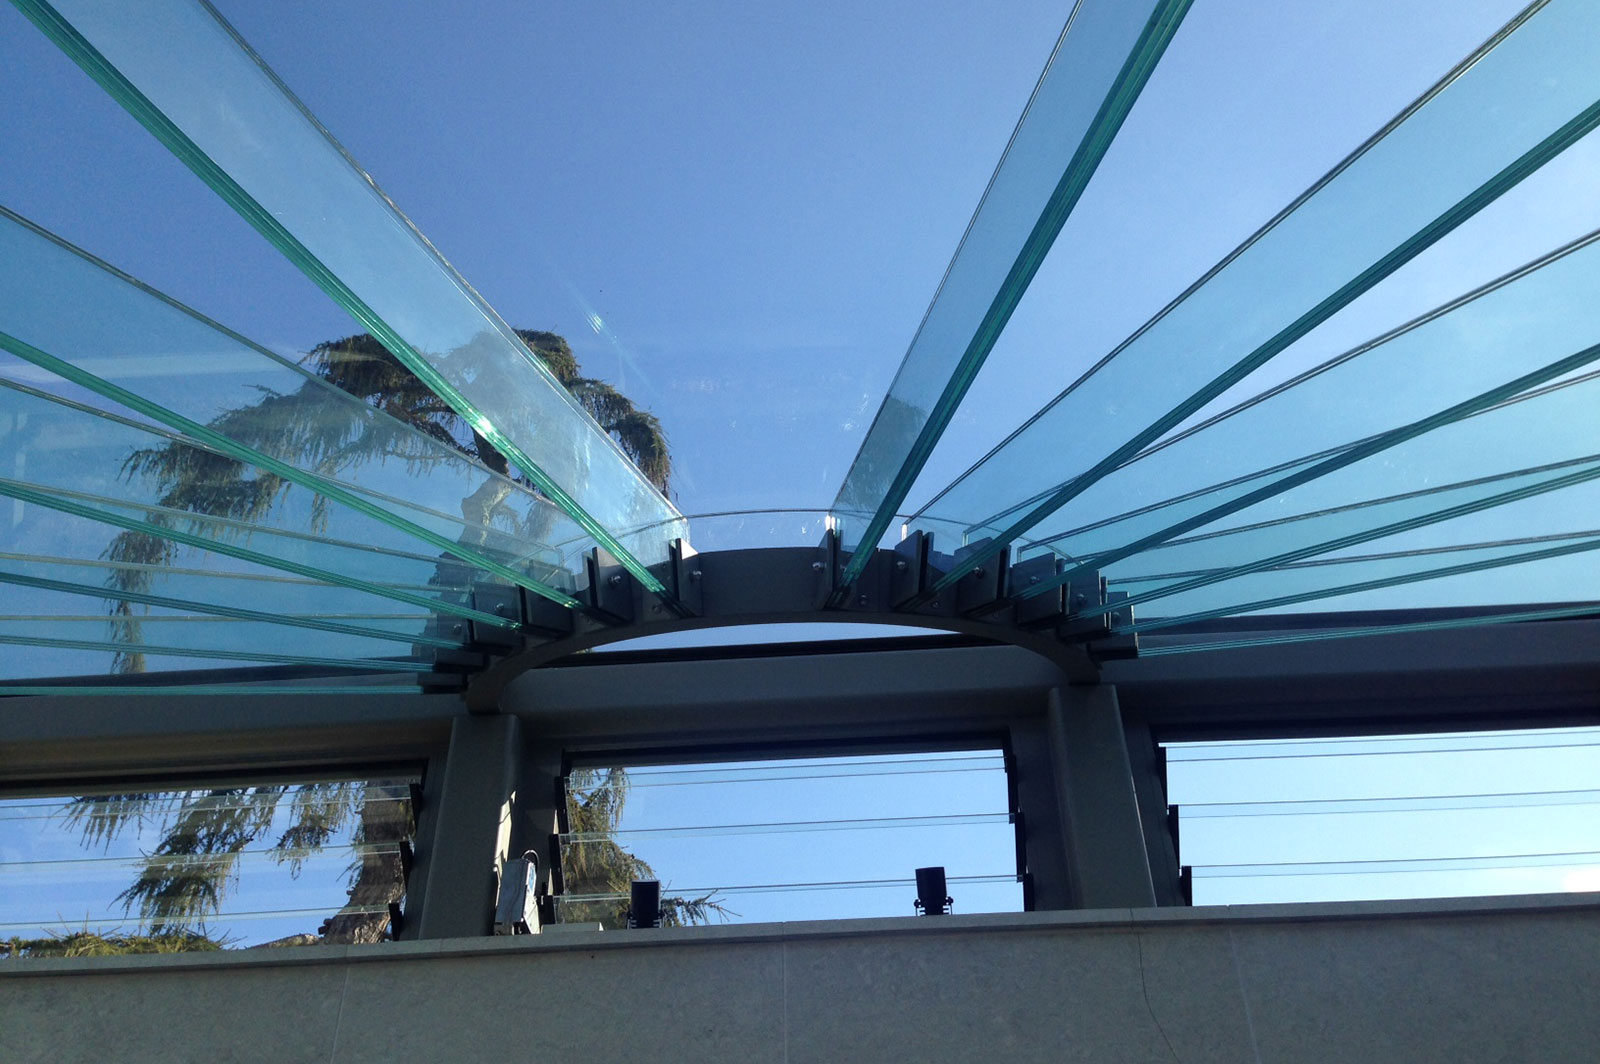 Structural Glass Roof with Beams and Louvre Windows, Glass Greenhouse